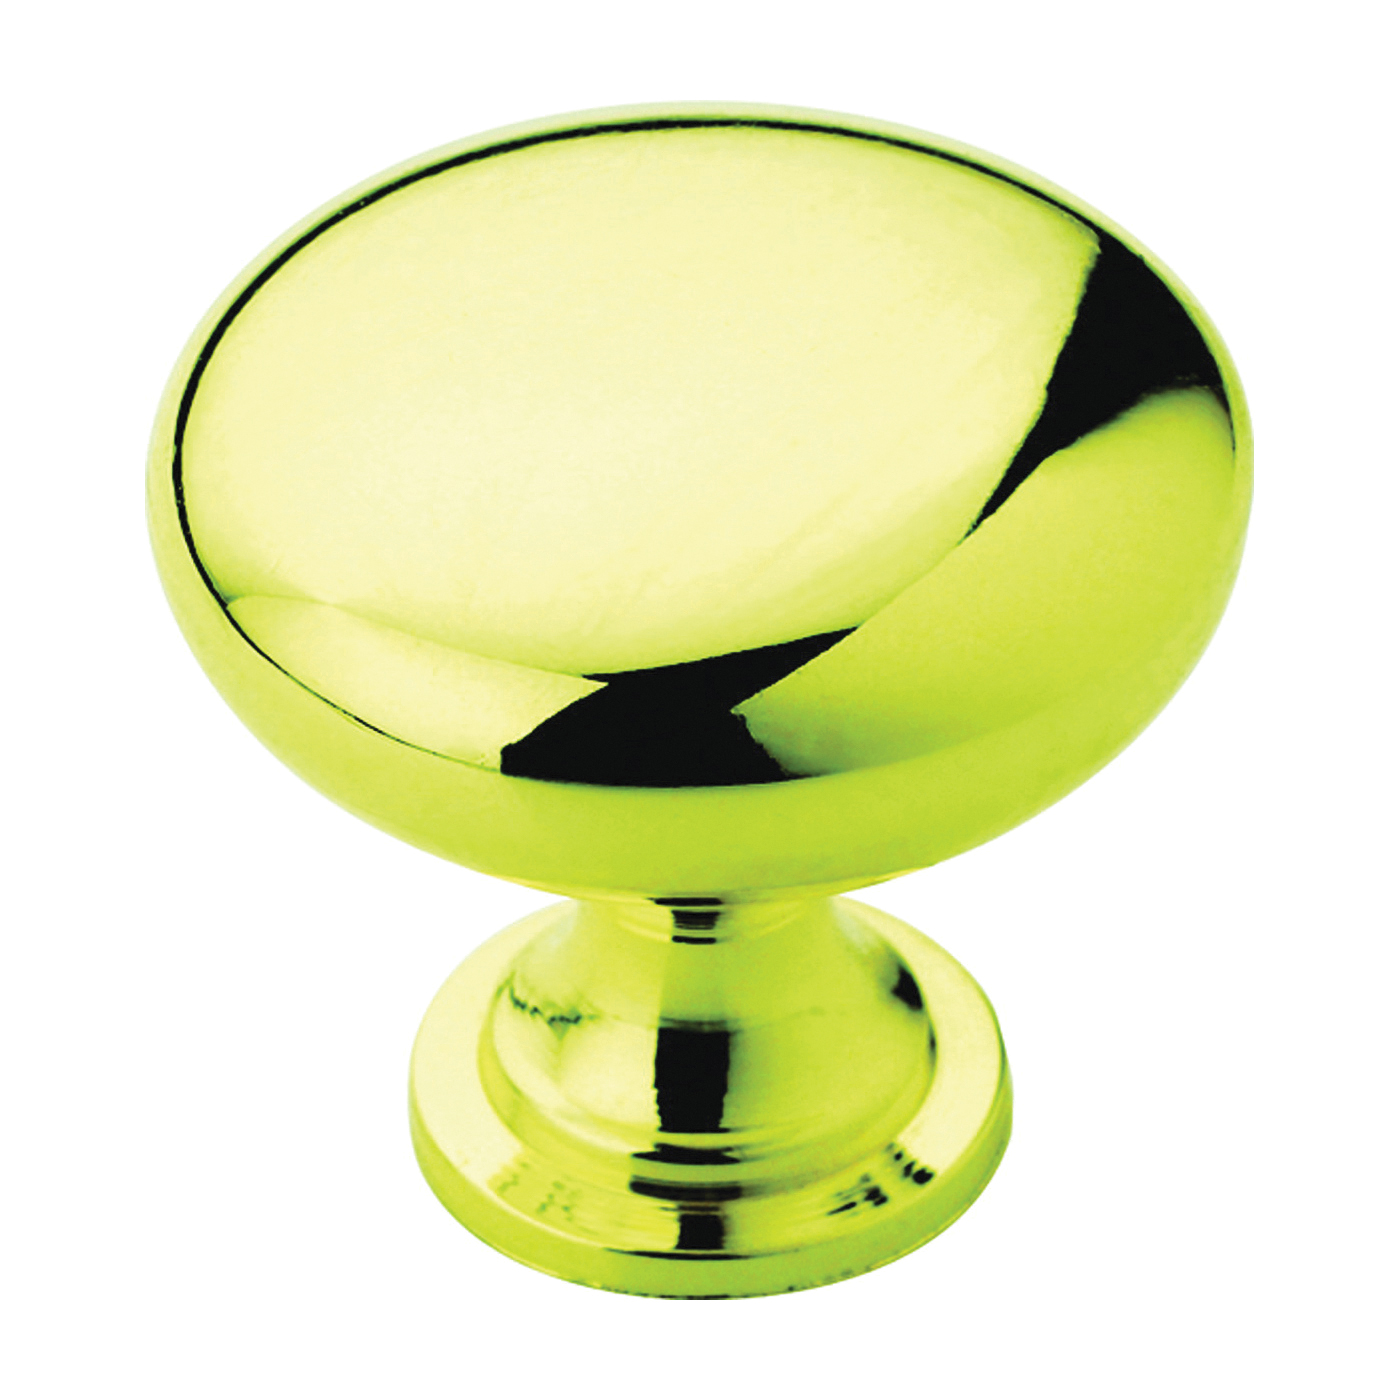 Picture of Amerock BP530053 Cabinet Knob, 1-1/8 in Projection, Zinc, Polished Brass